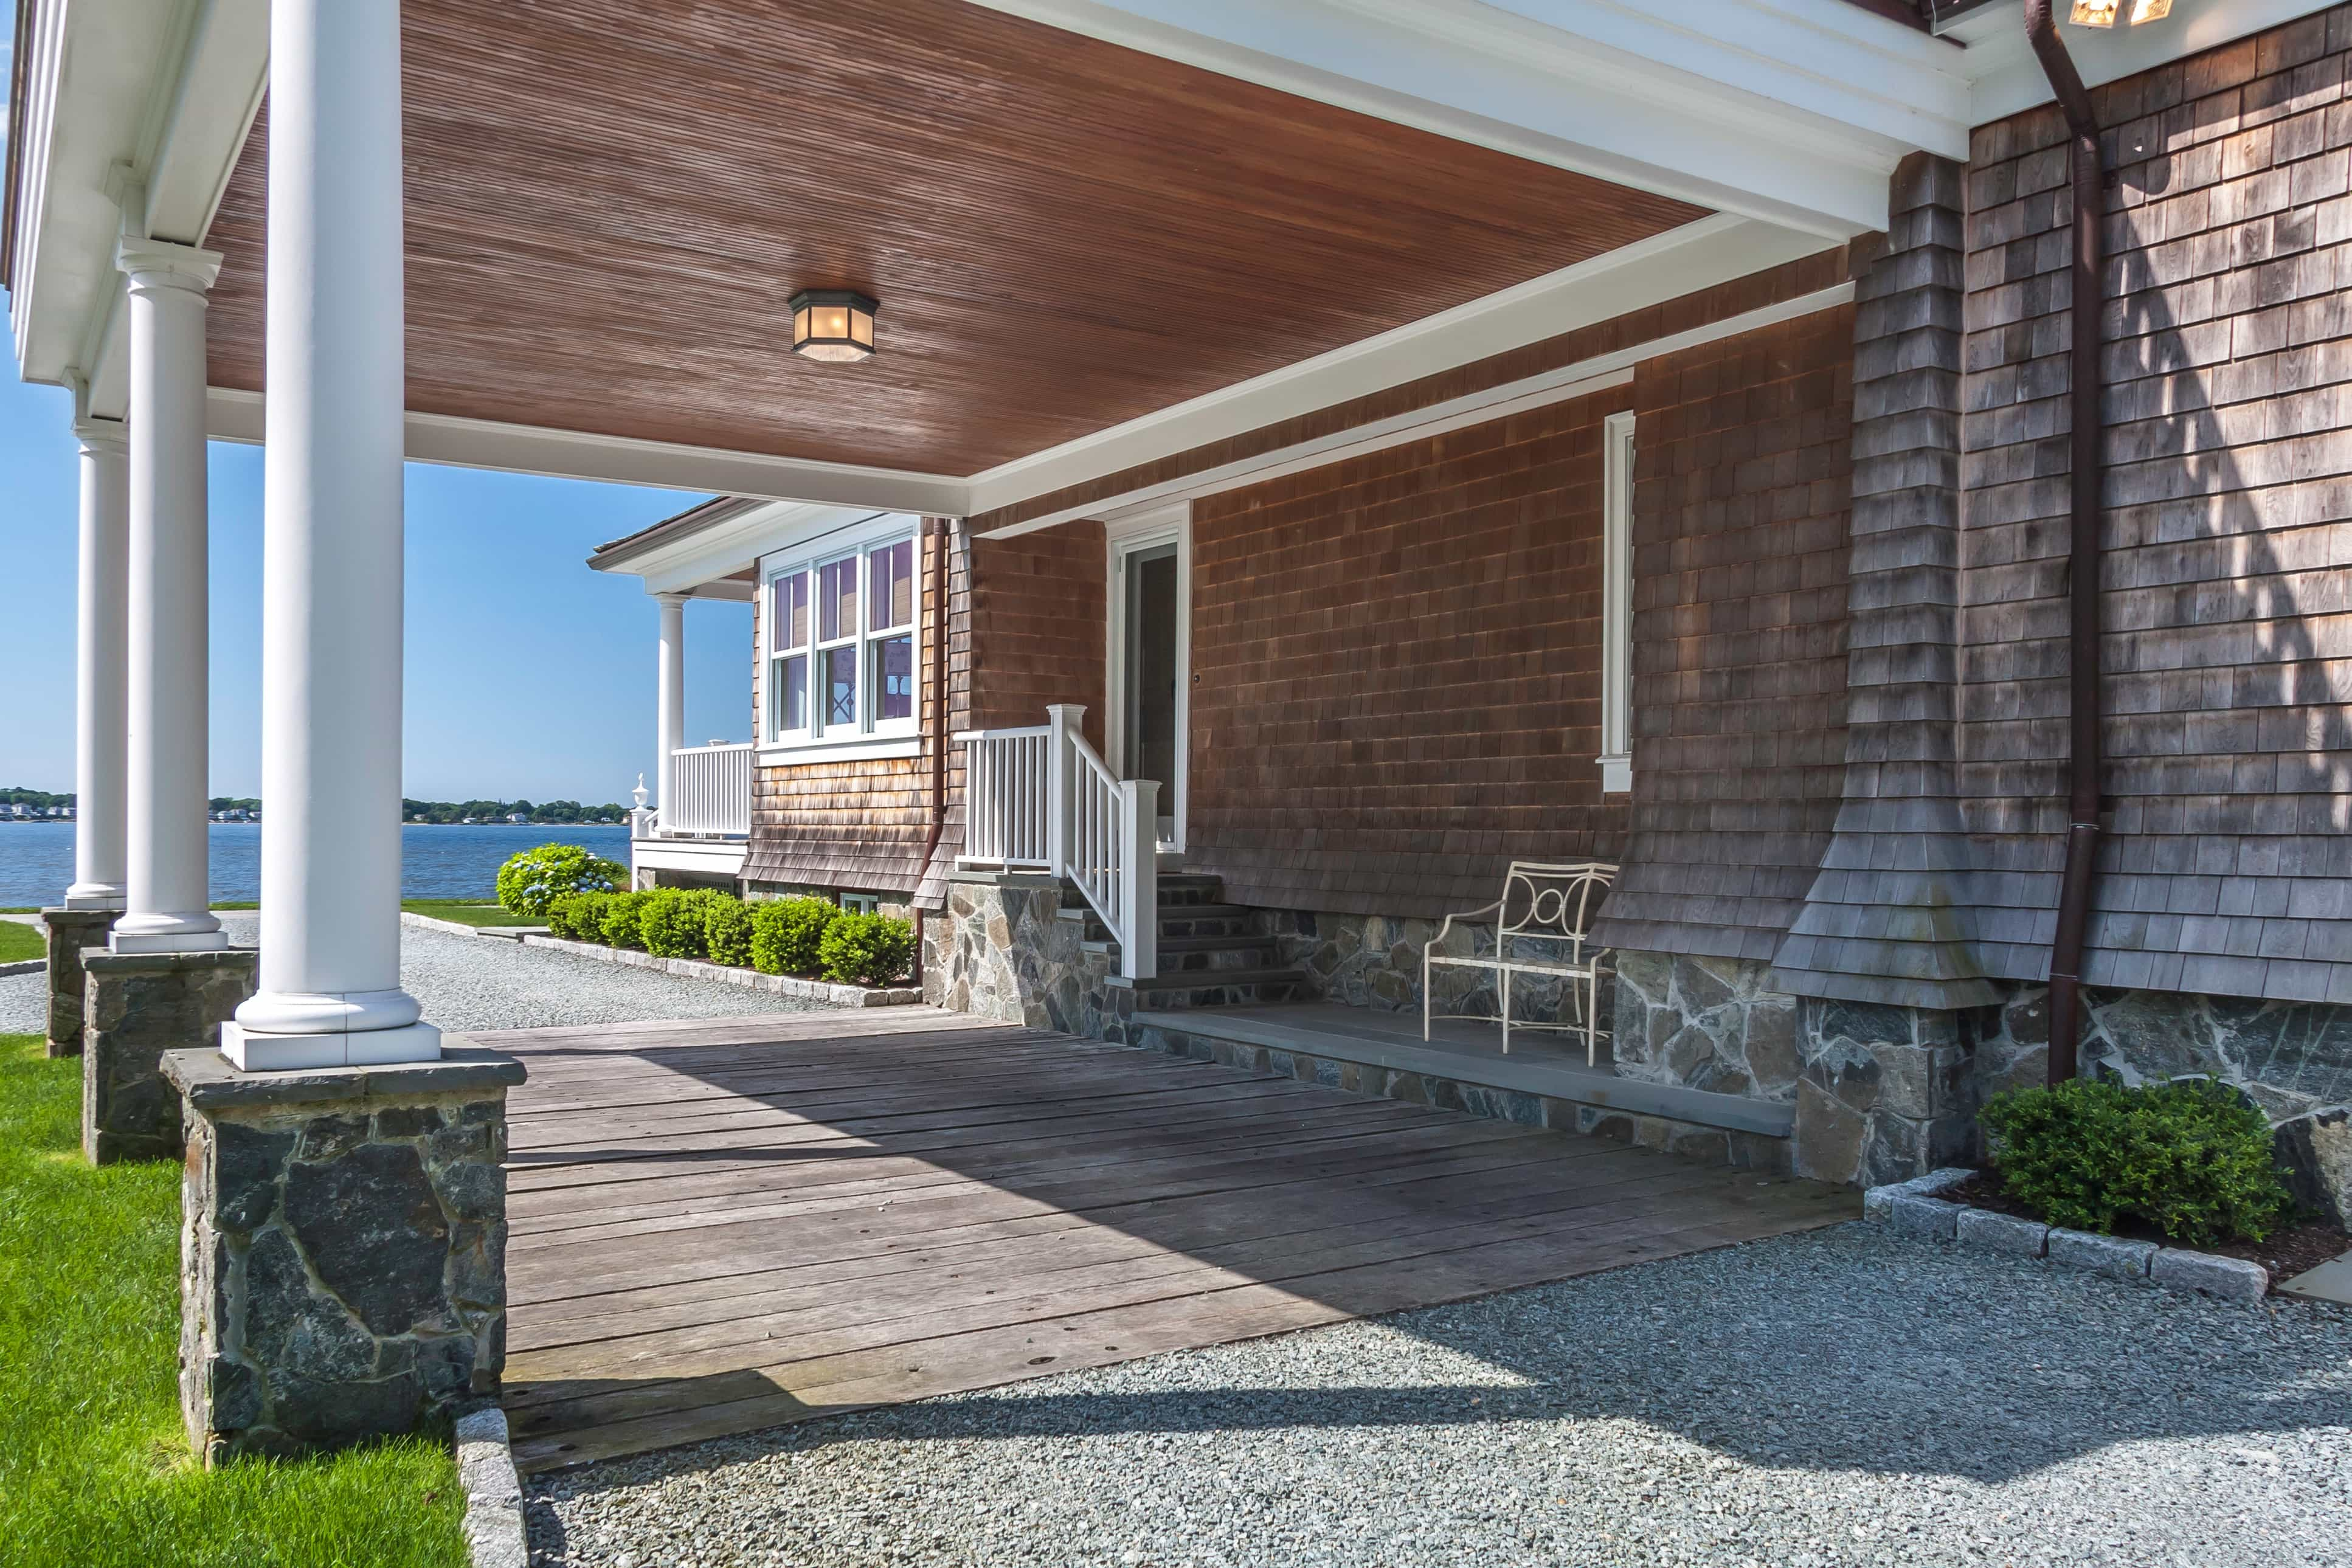 Featured Image of Classic Cape Cod Style Exterior With Driveway